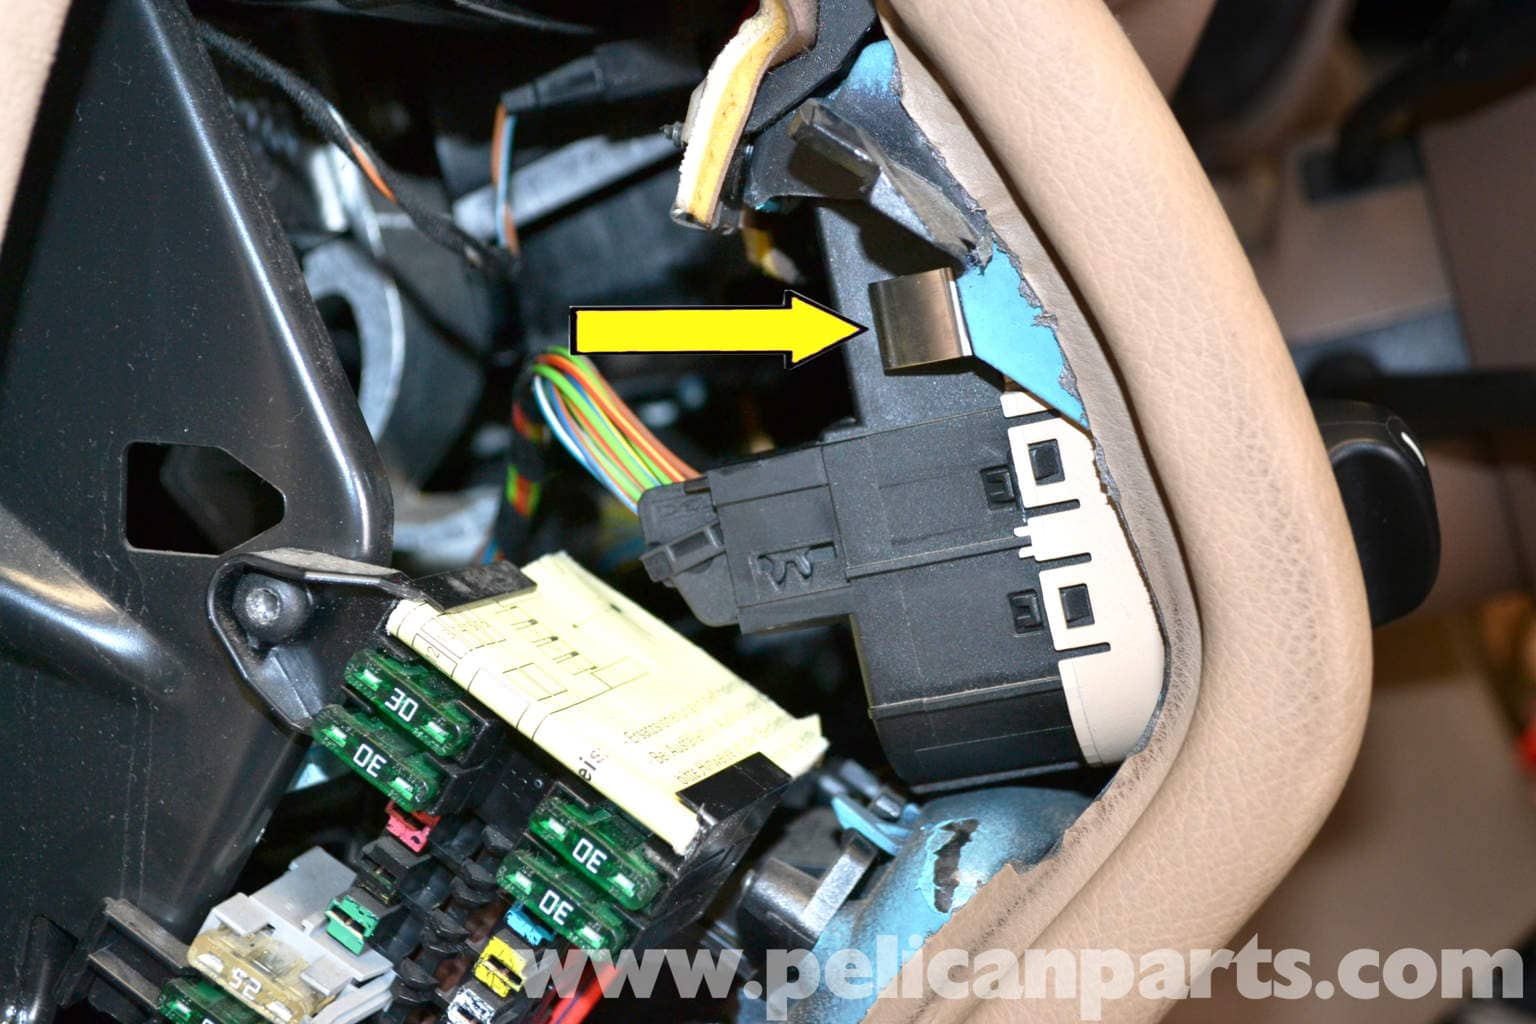 Mercedes Benz W203 Light Switch Replacement 2001 2007